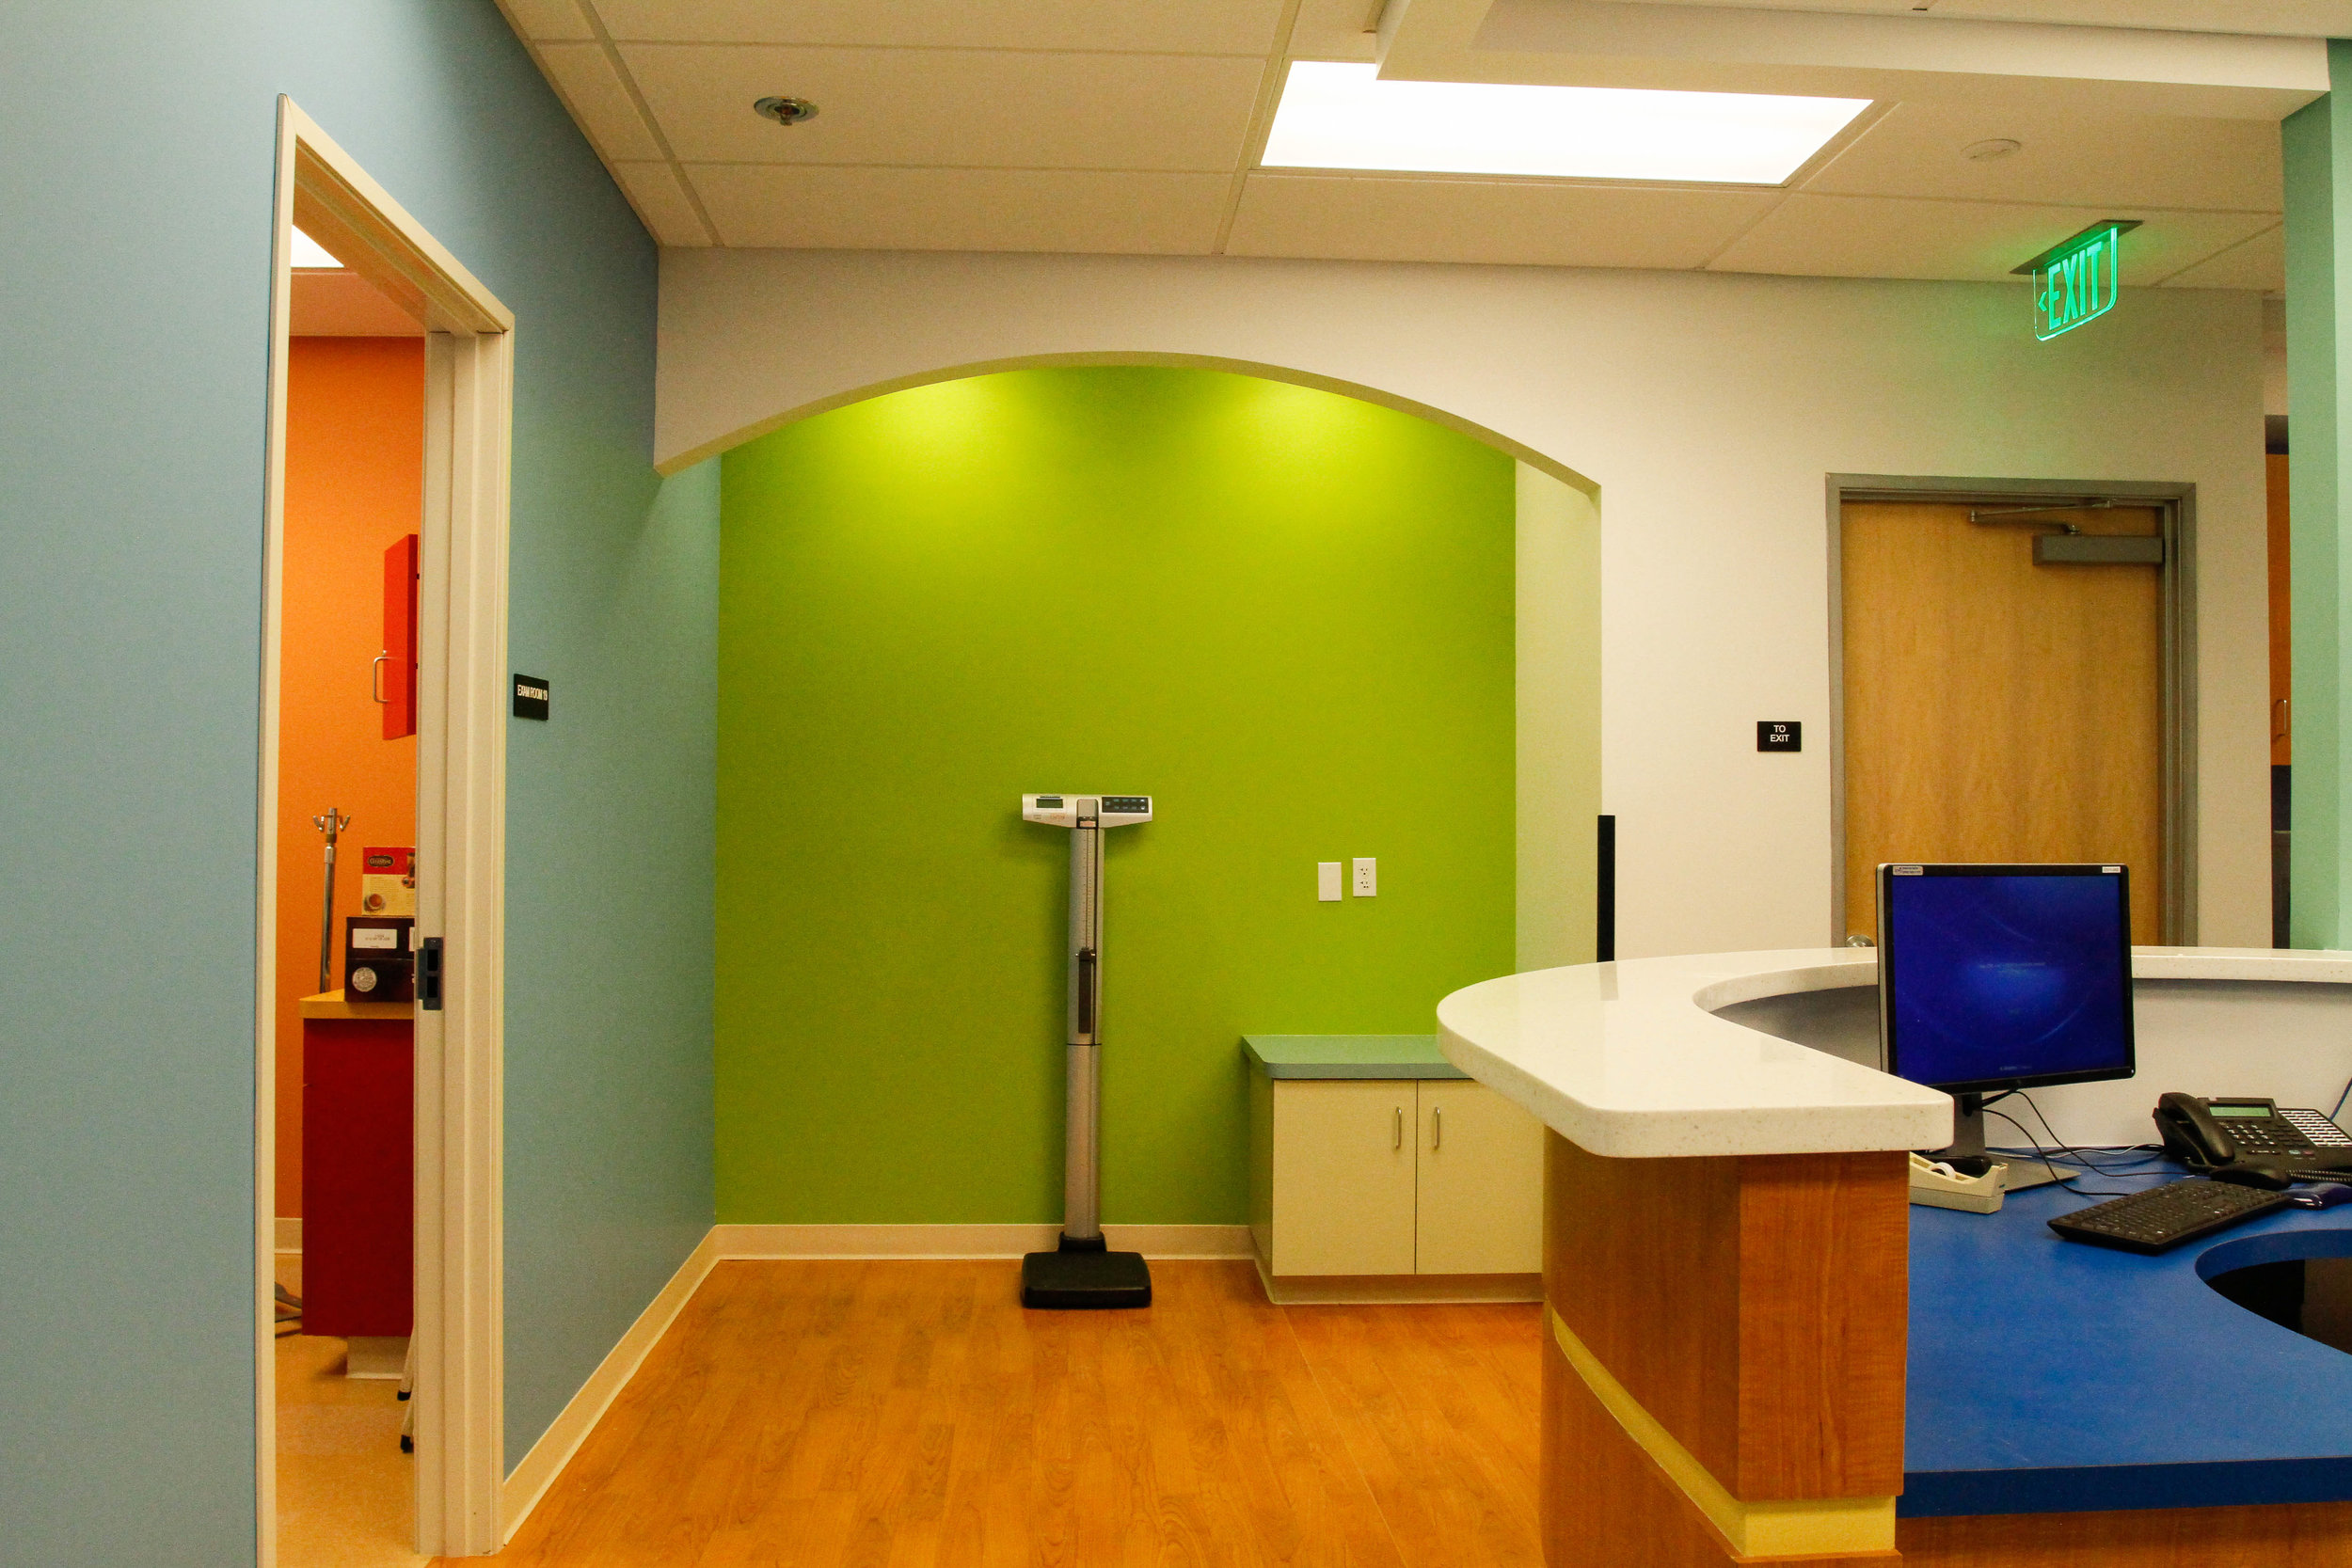 Tenant Improvement Construction for Rady's Childrens Clinic